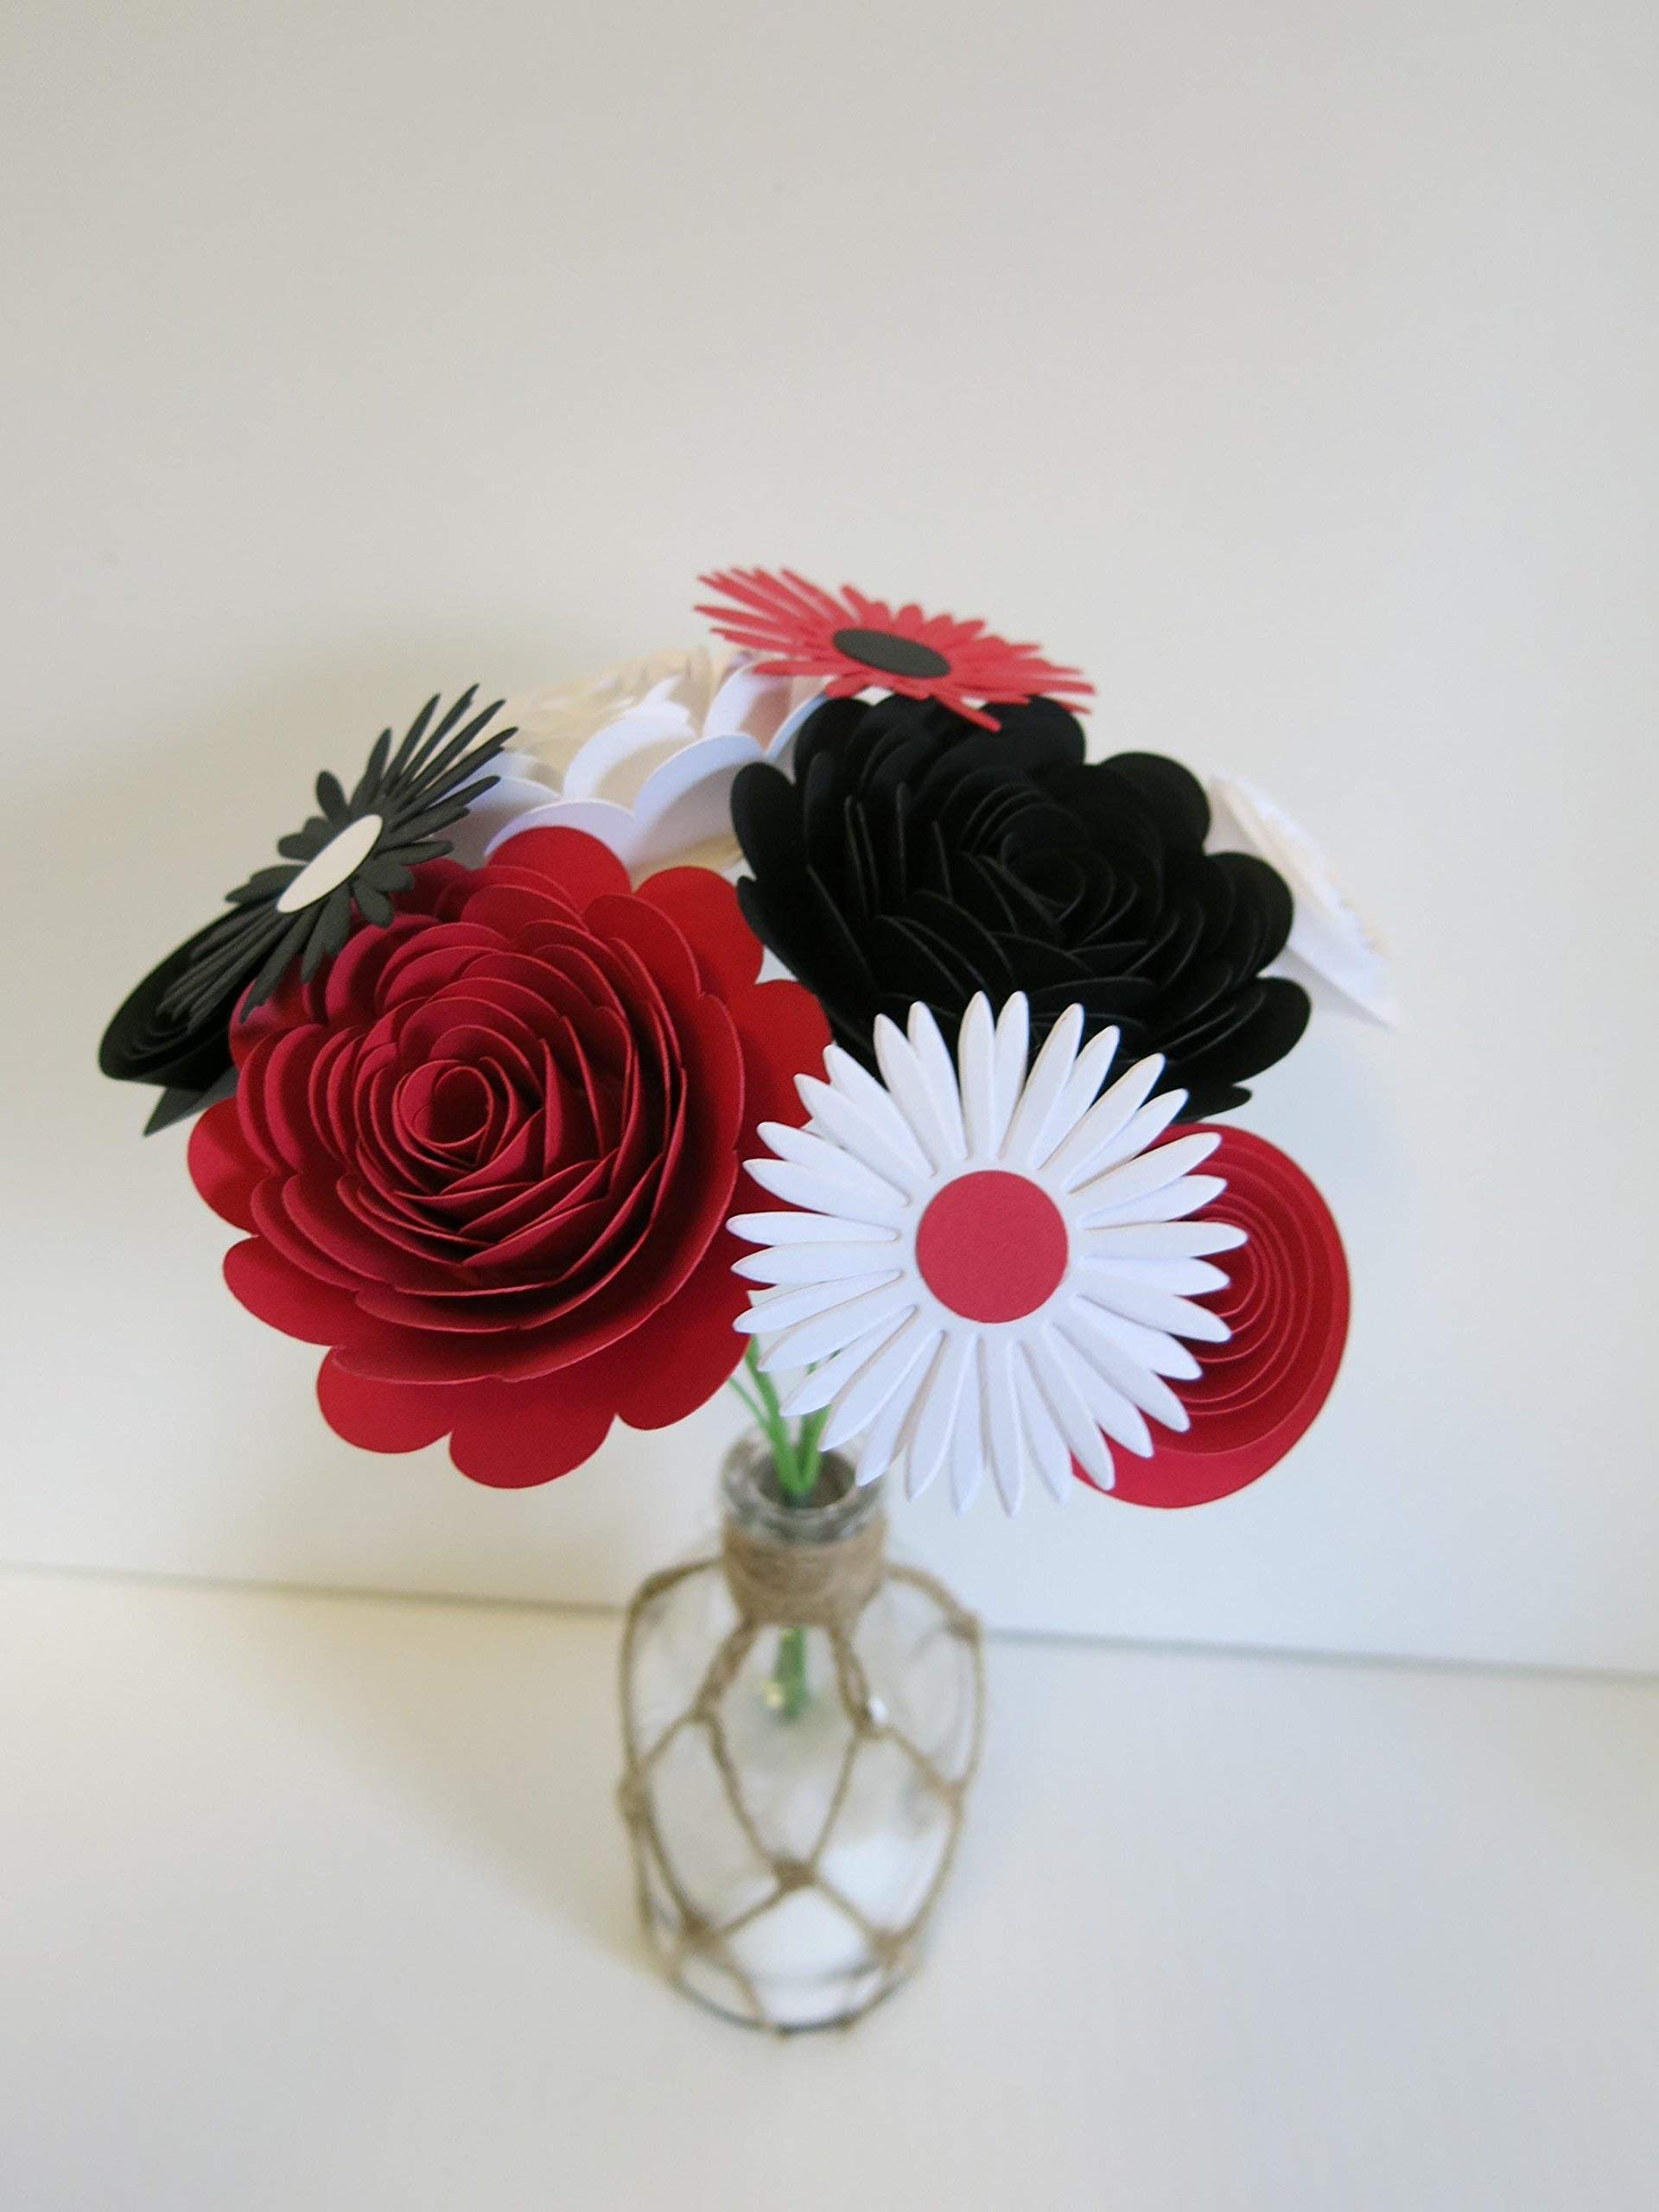 Red, Black and White Mixed Paper Flower Bouquet, Modern Roses and Daisies on Stems, Set of 9 Floral Picks